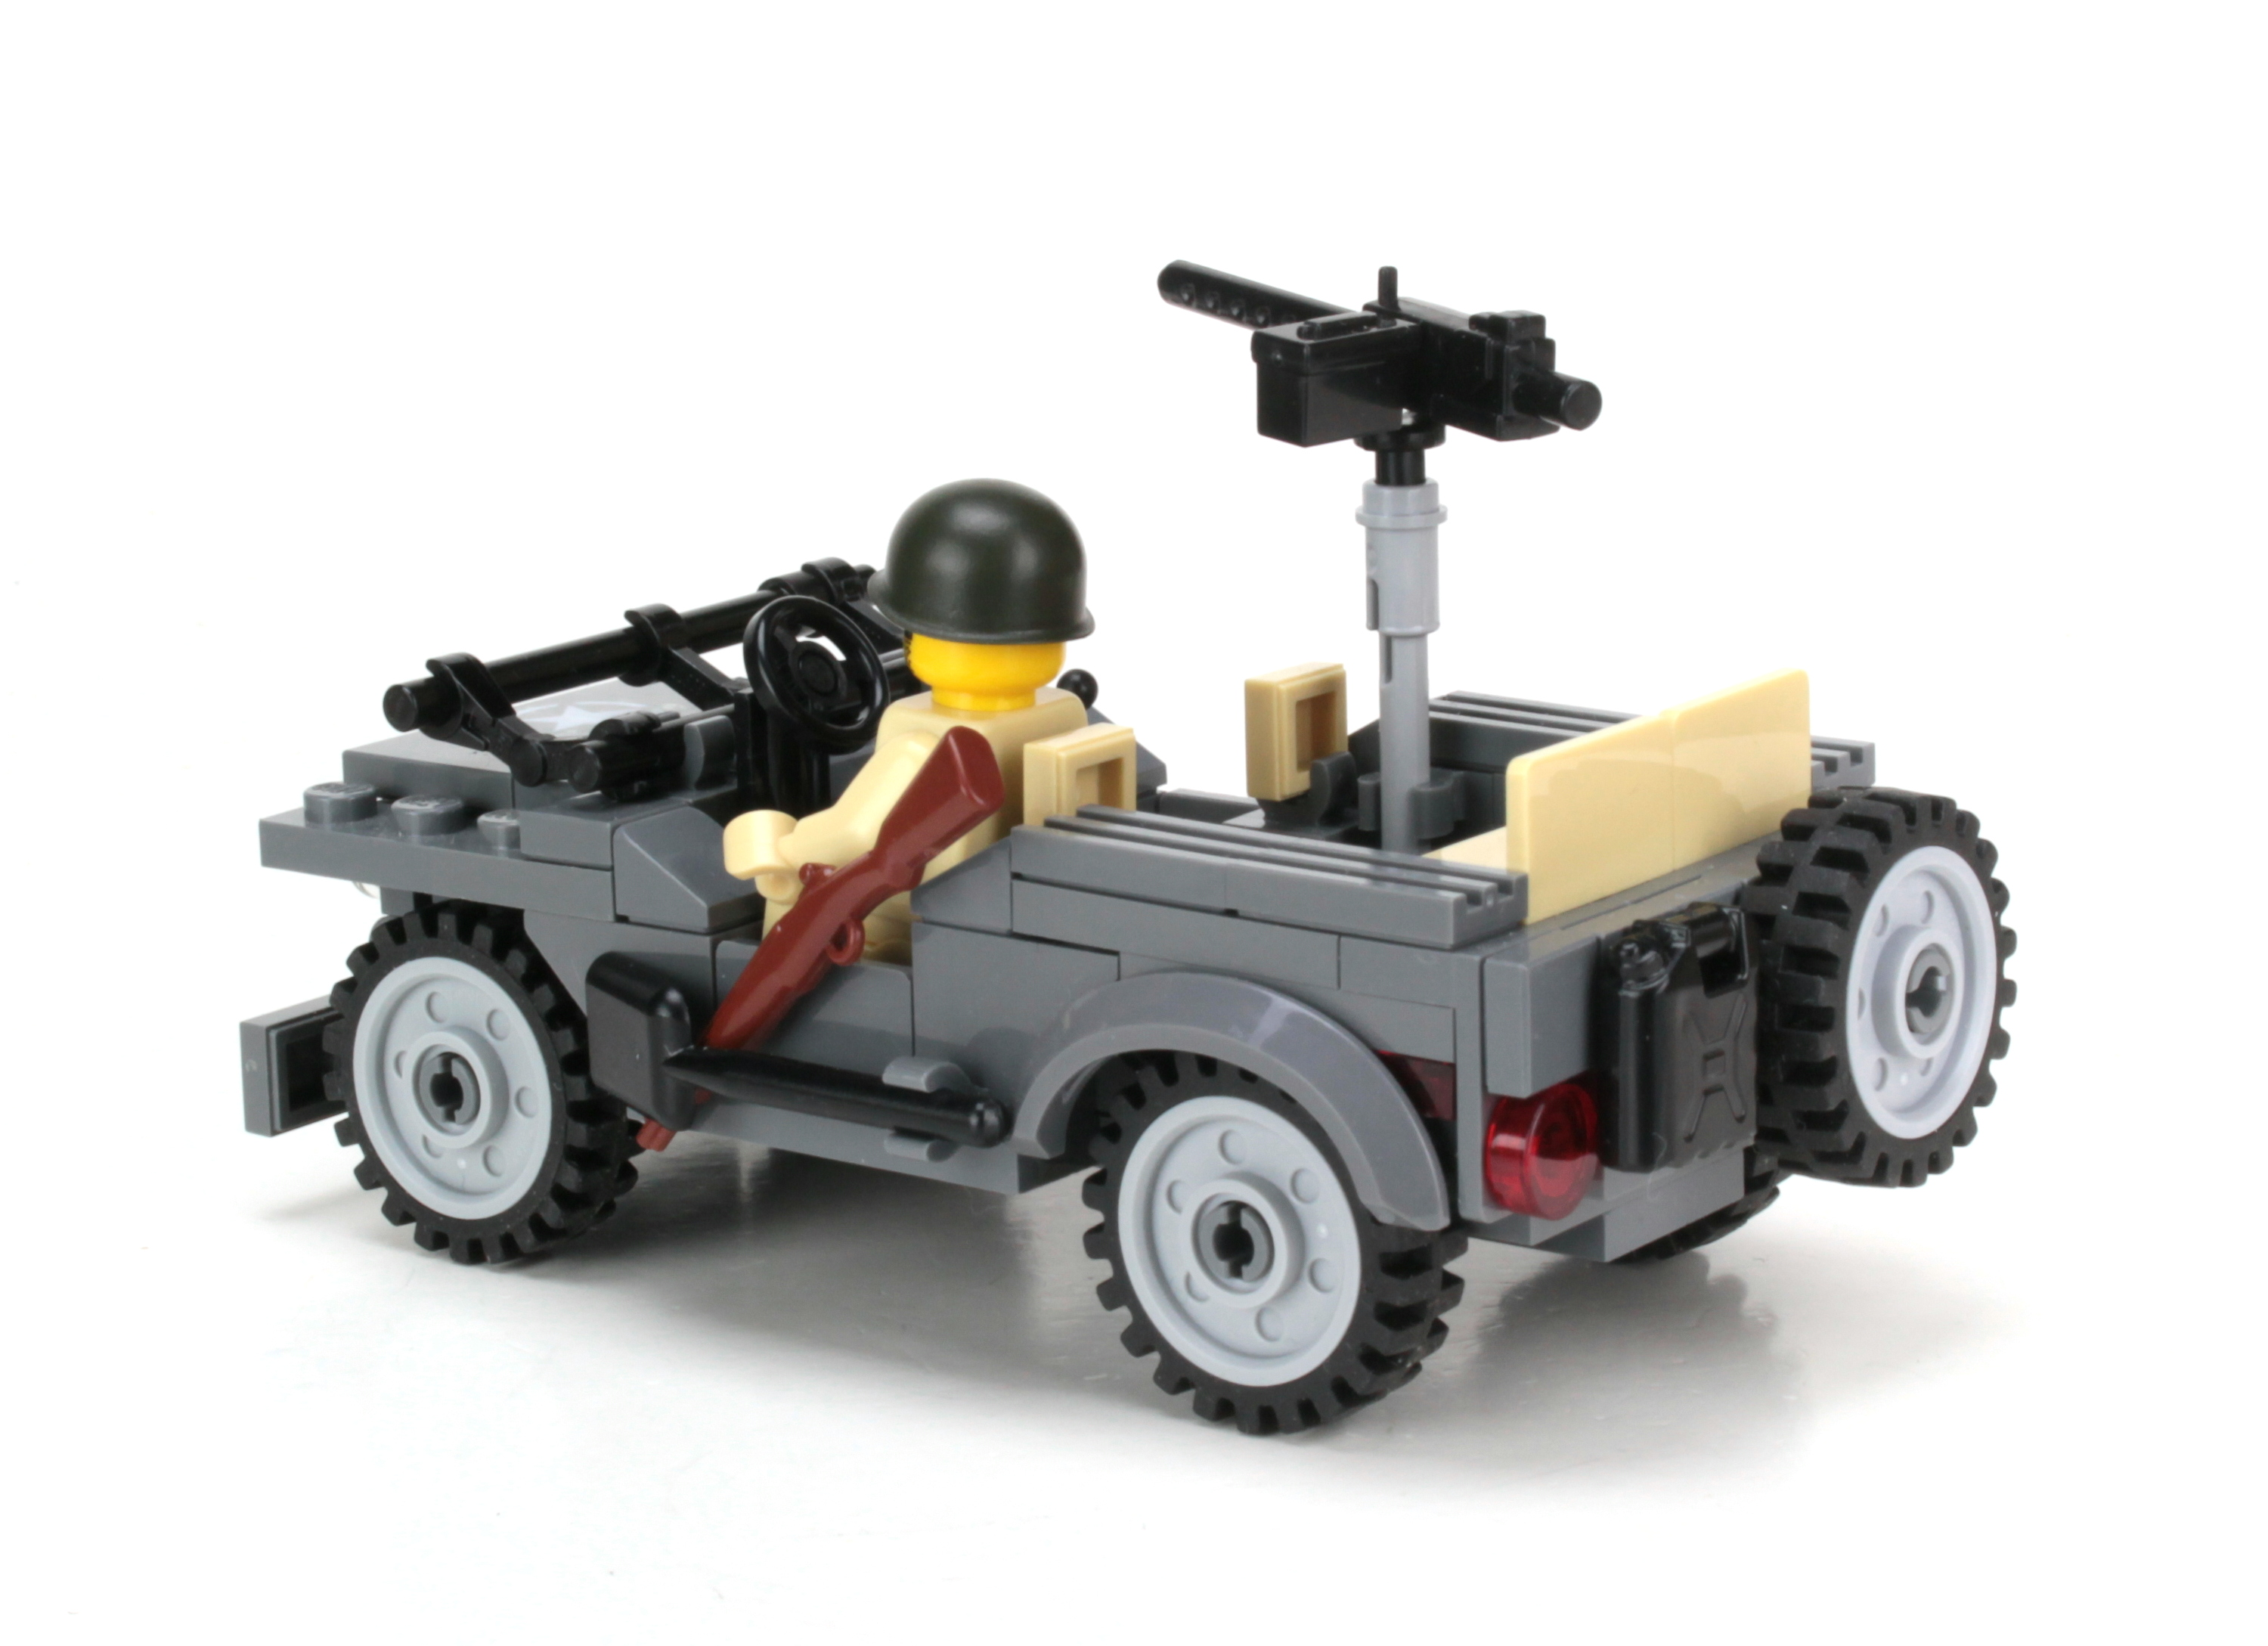 World War 2 American Willy/'s Jeep WW2 w// minifigure made with real LEGO® bricks